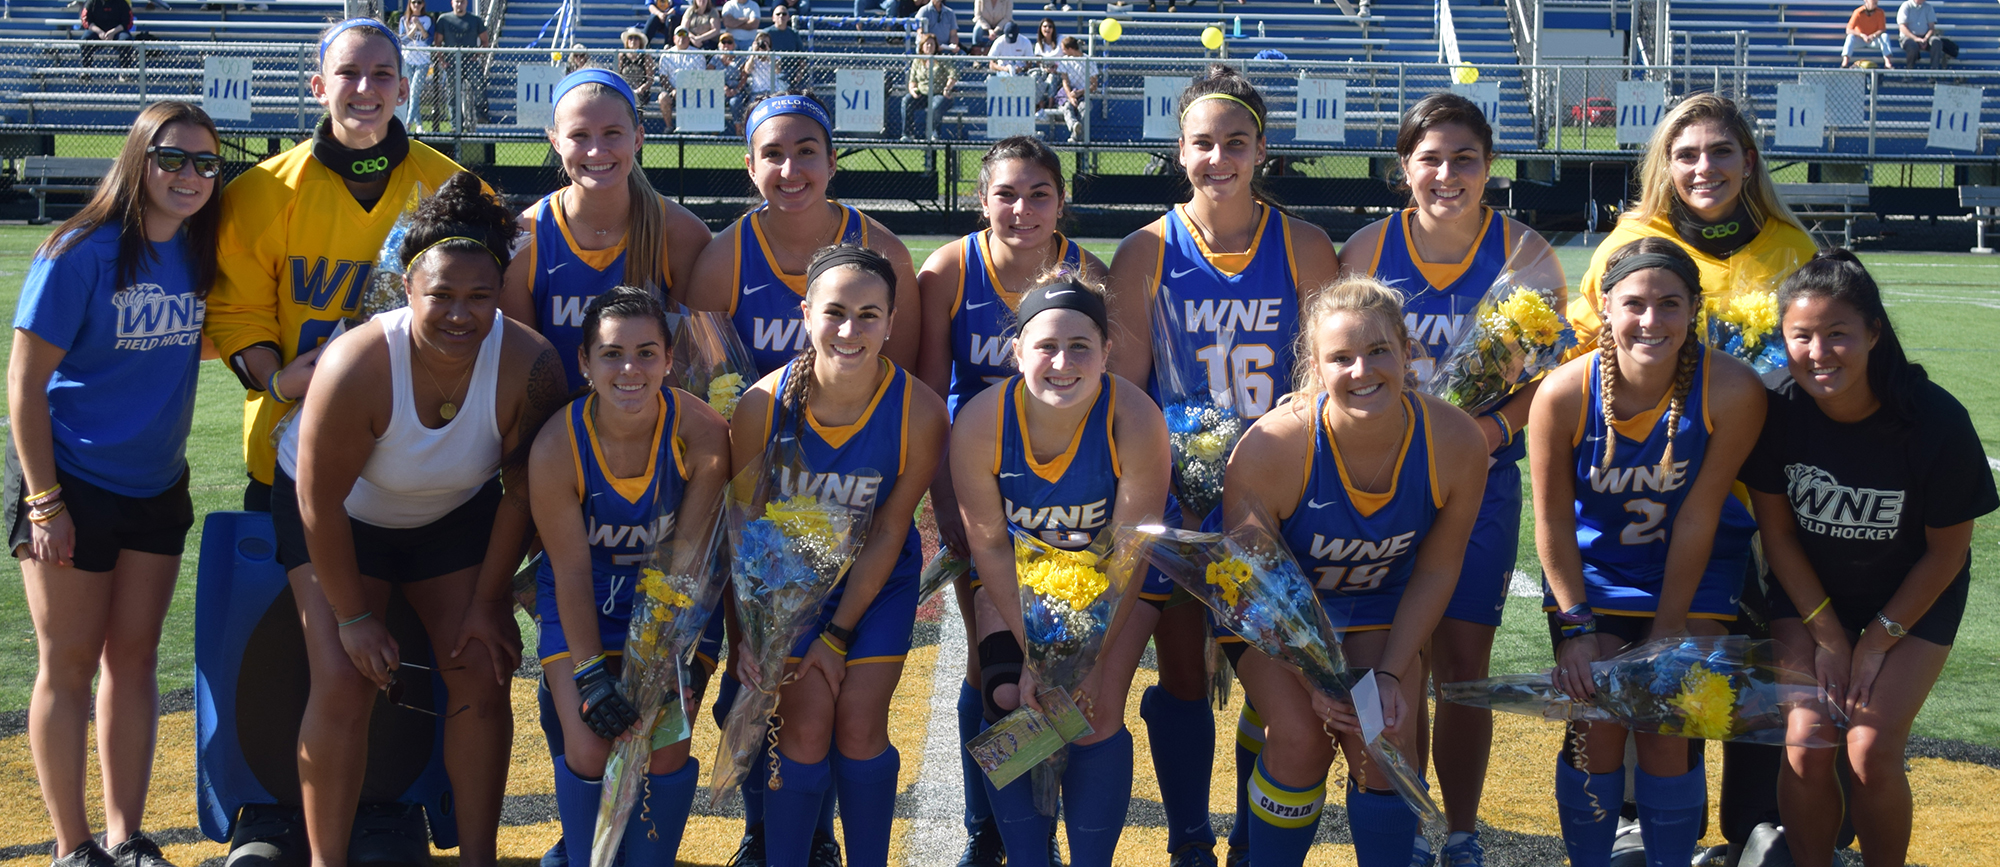 Western New England honored its 12 seniors prior to the start of Saturday's contest. (Photo by Rachael Margossian)